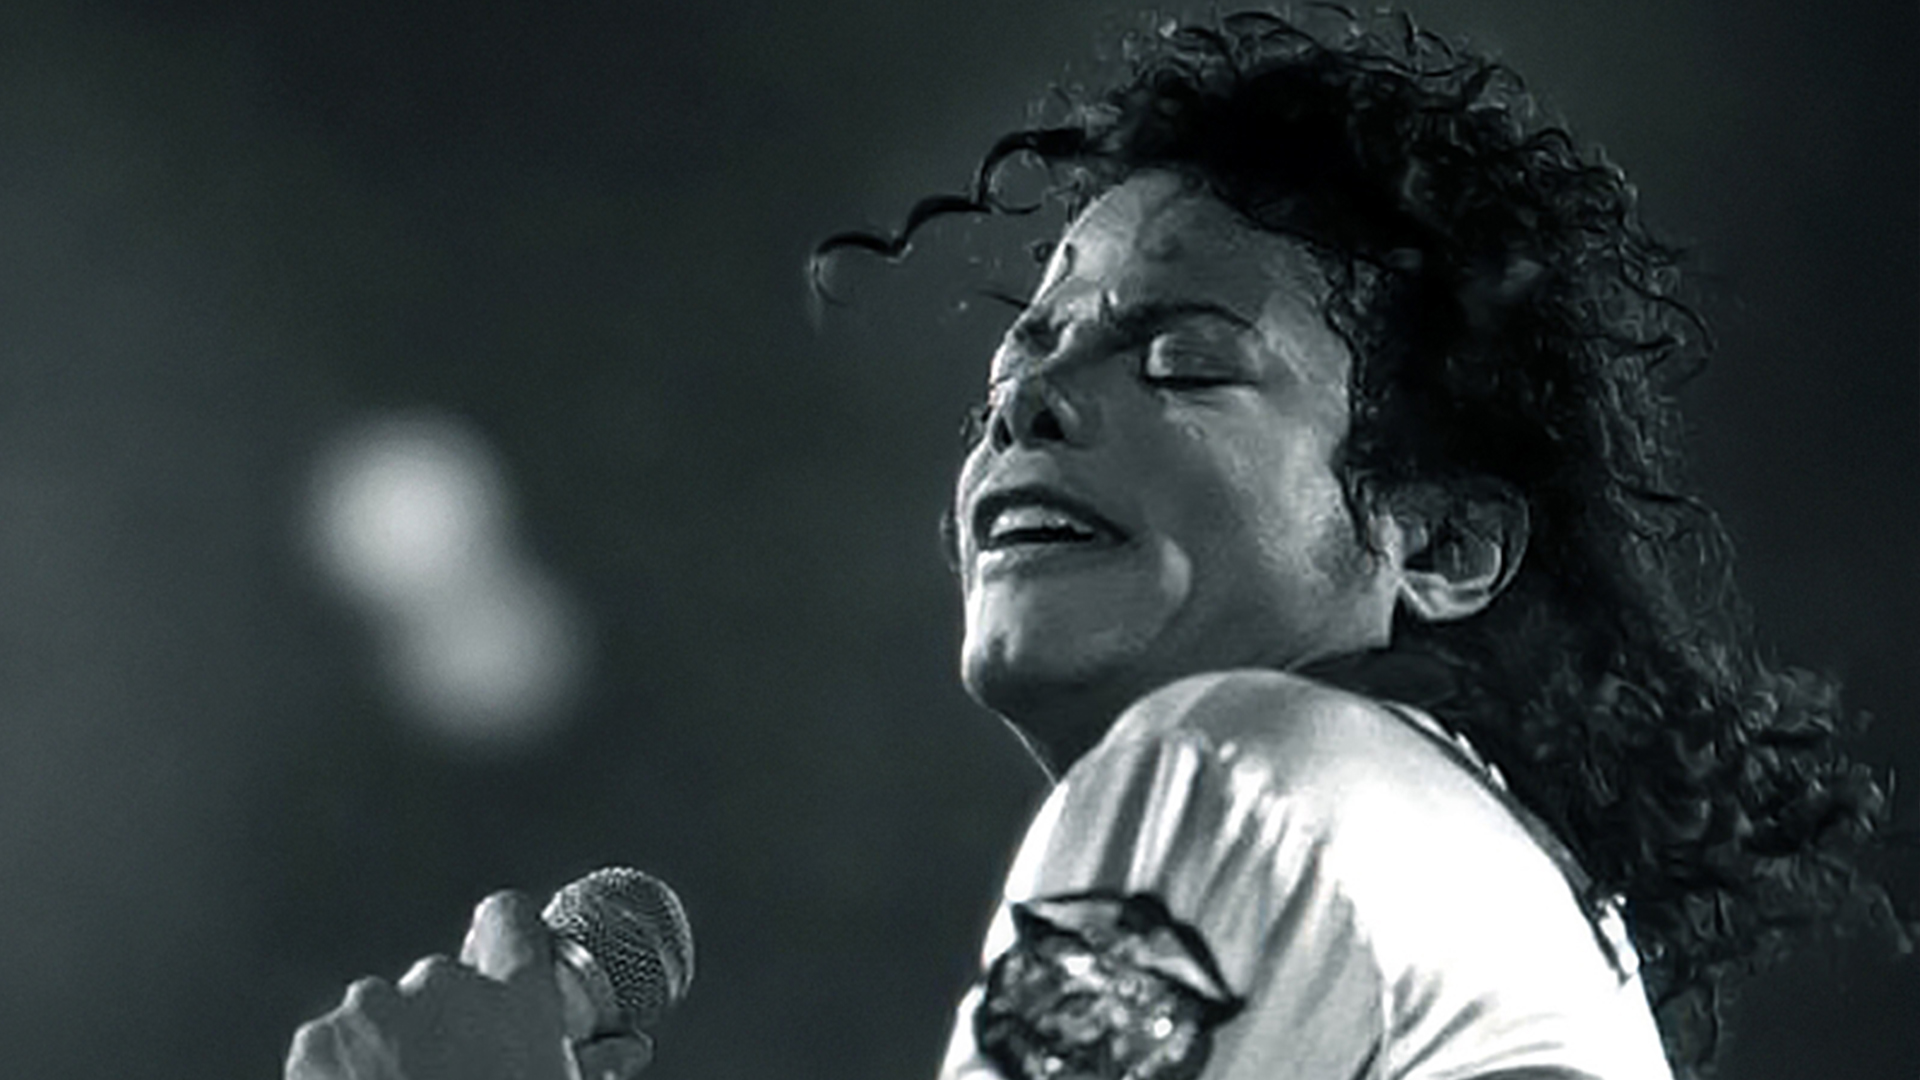 Remembering The King of Pop